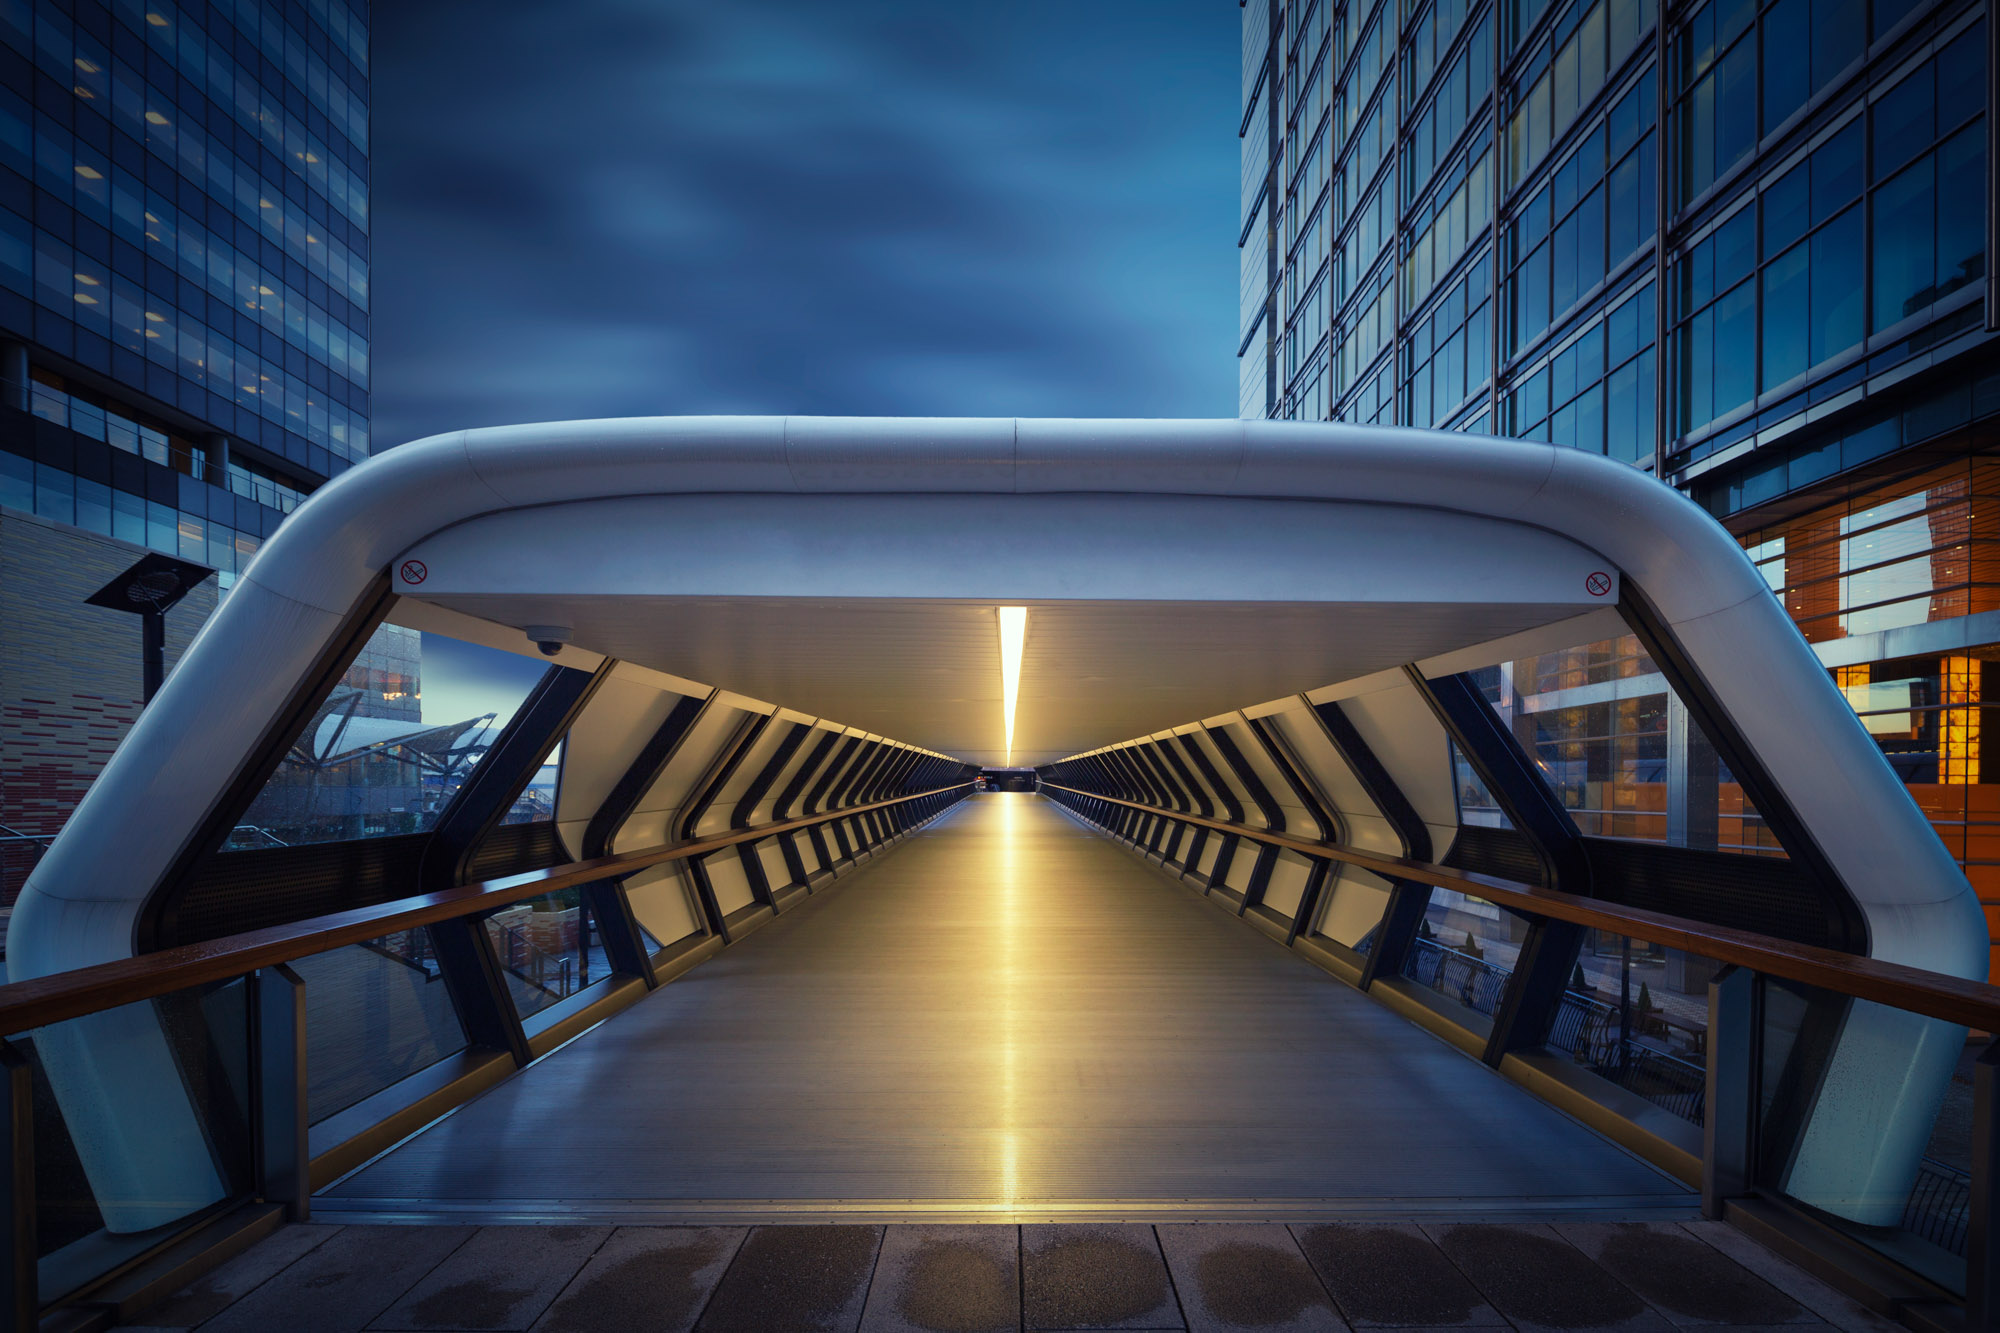 long exposure architecture photograph walkway in Canary Wharf London docklands